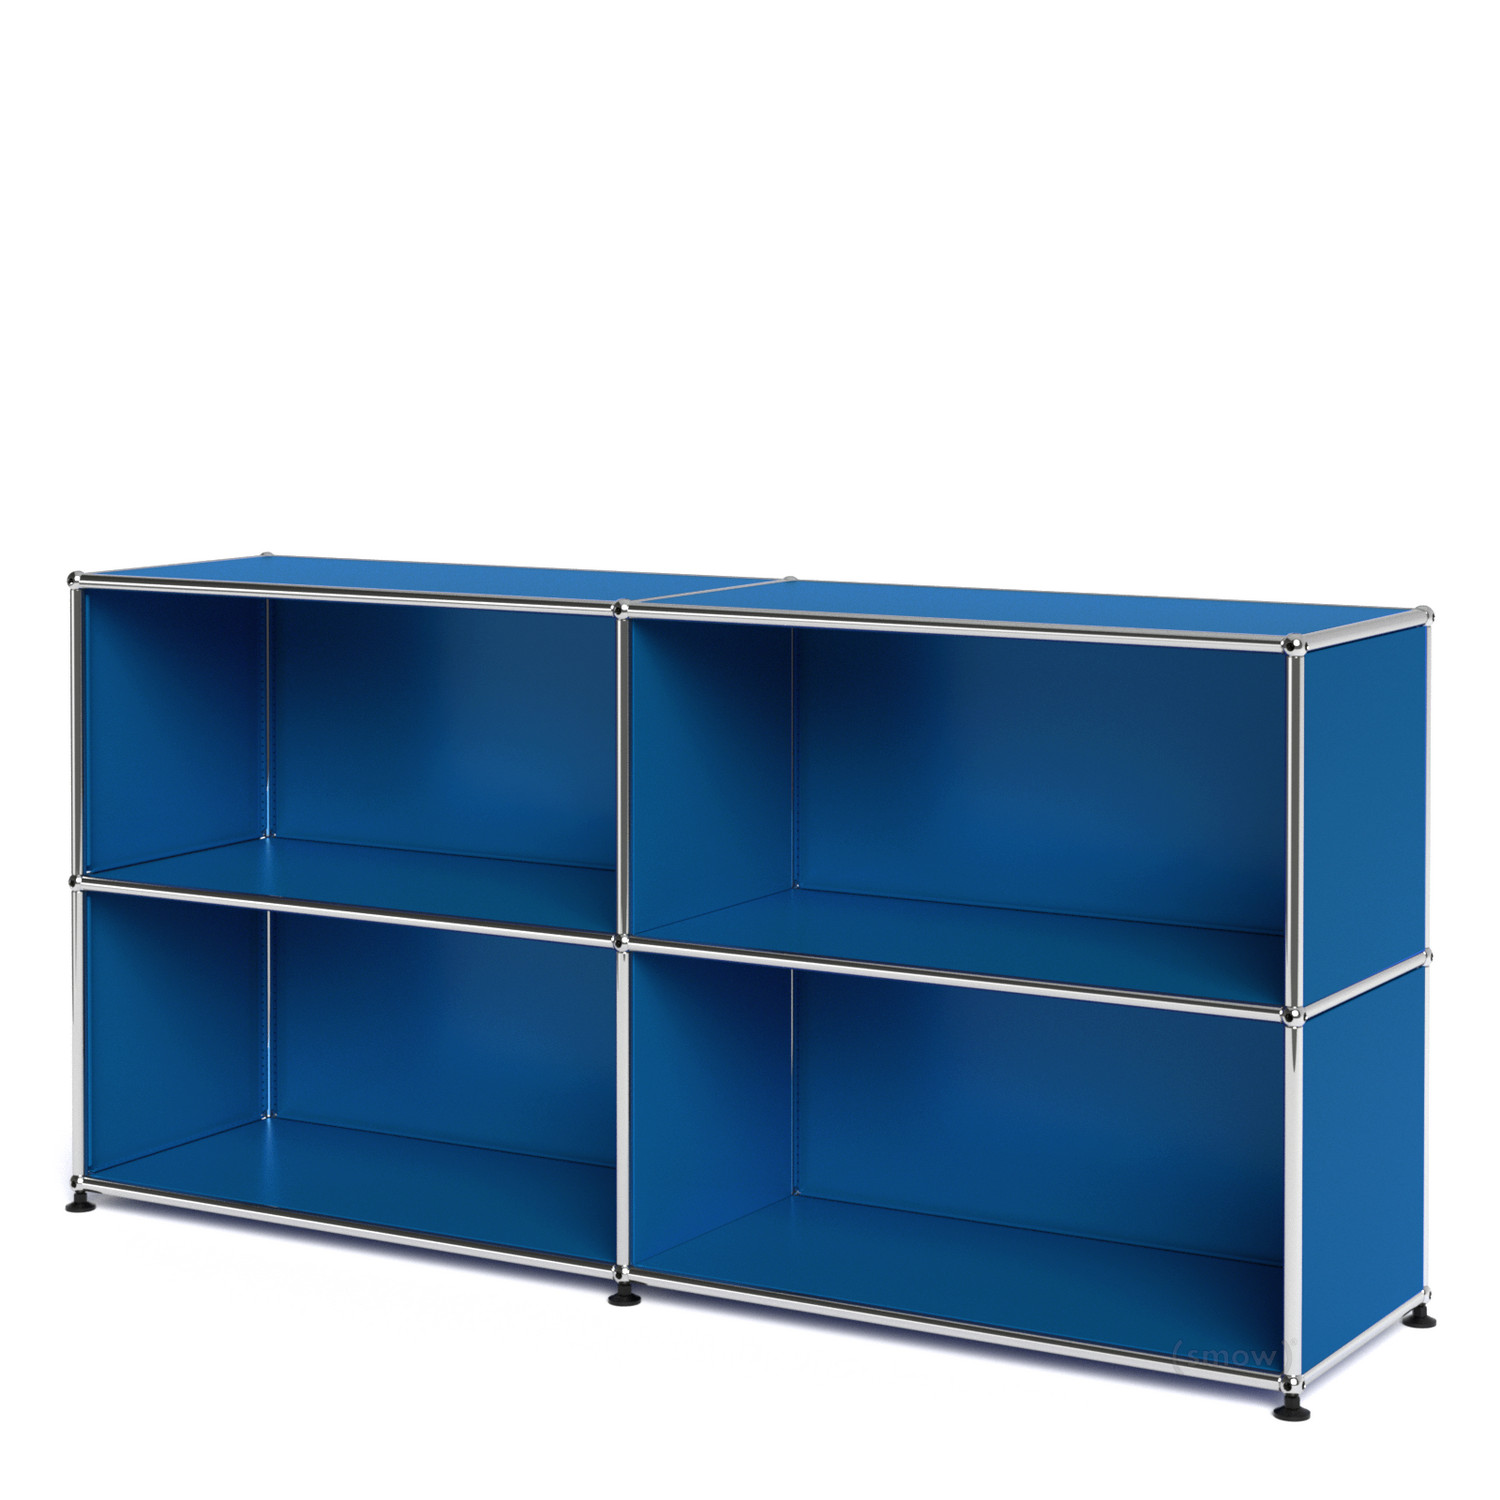 Usm haller sideboard l open gentian blue ral 5010 by for Sideboard usm